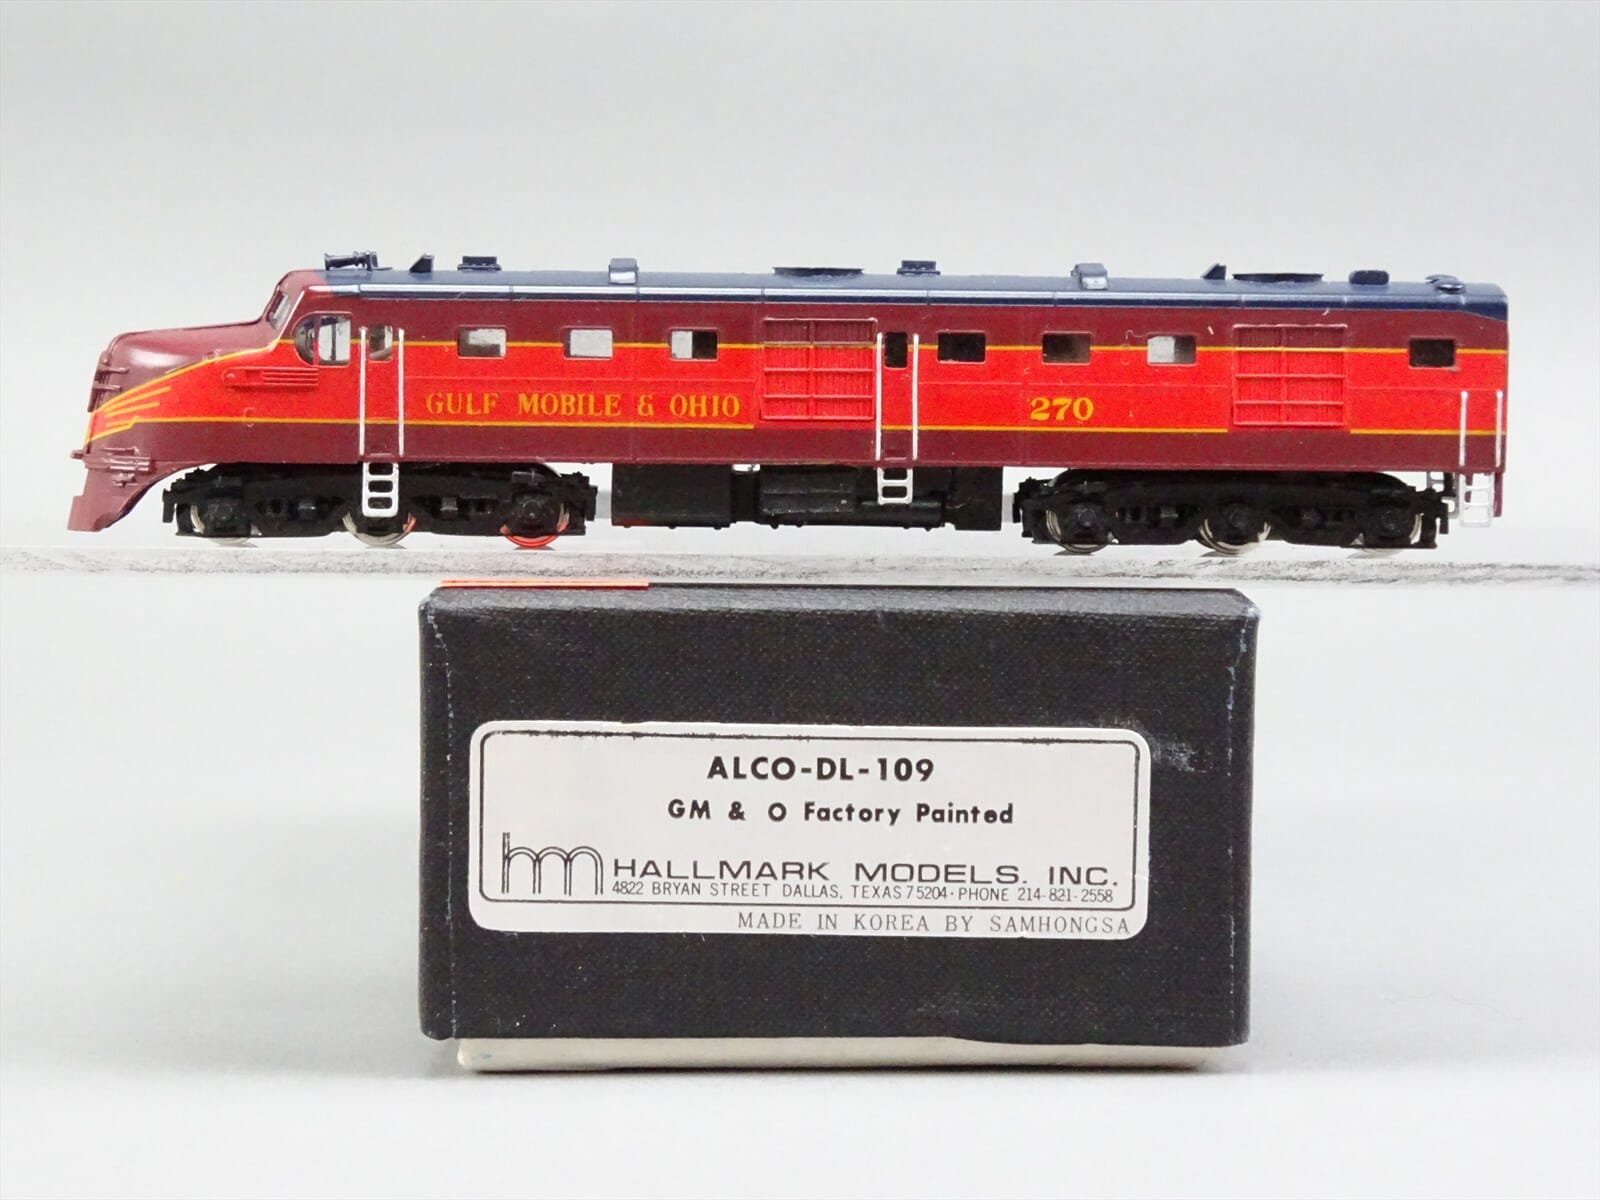 N Scale - Hallmark Models - NS0165 - Locomotive, Diesel, Alco DL-109 - Gulf Mobile & Ohio - 270